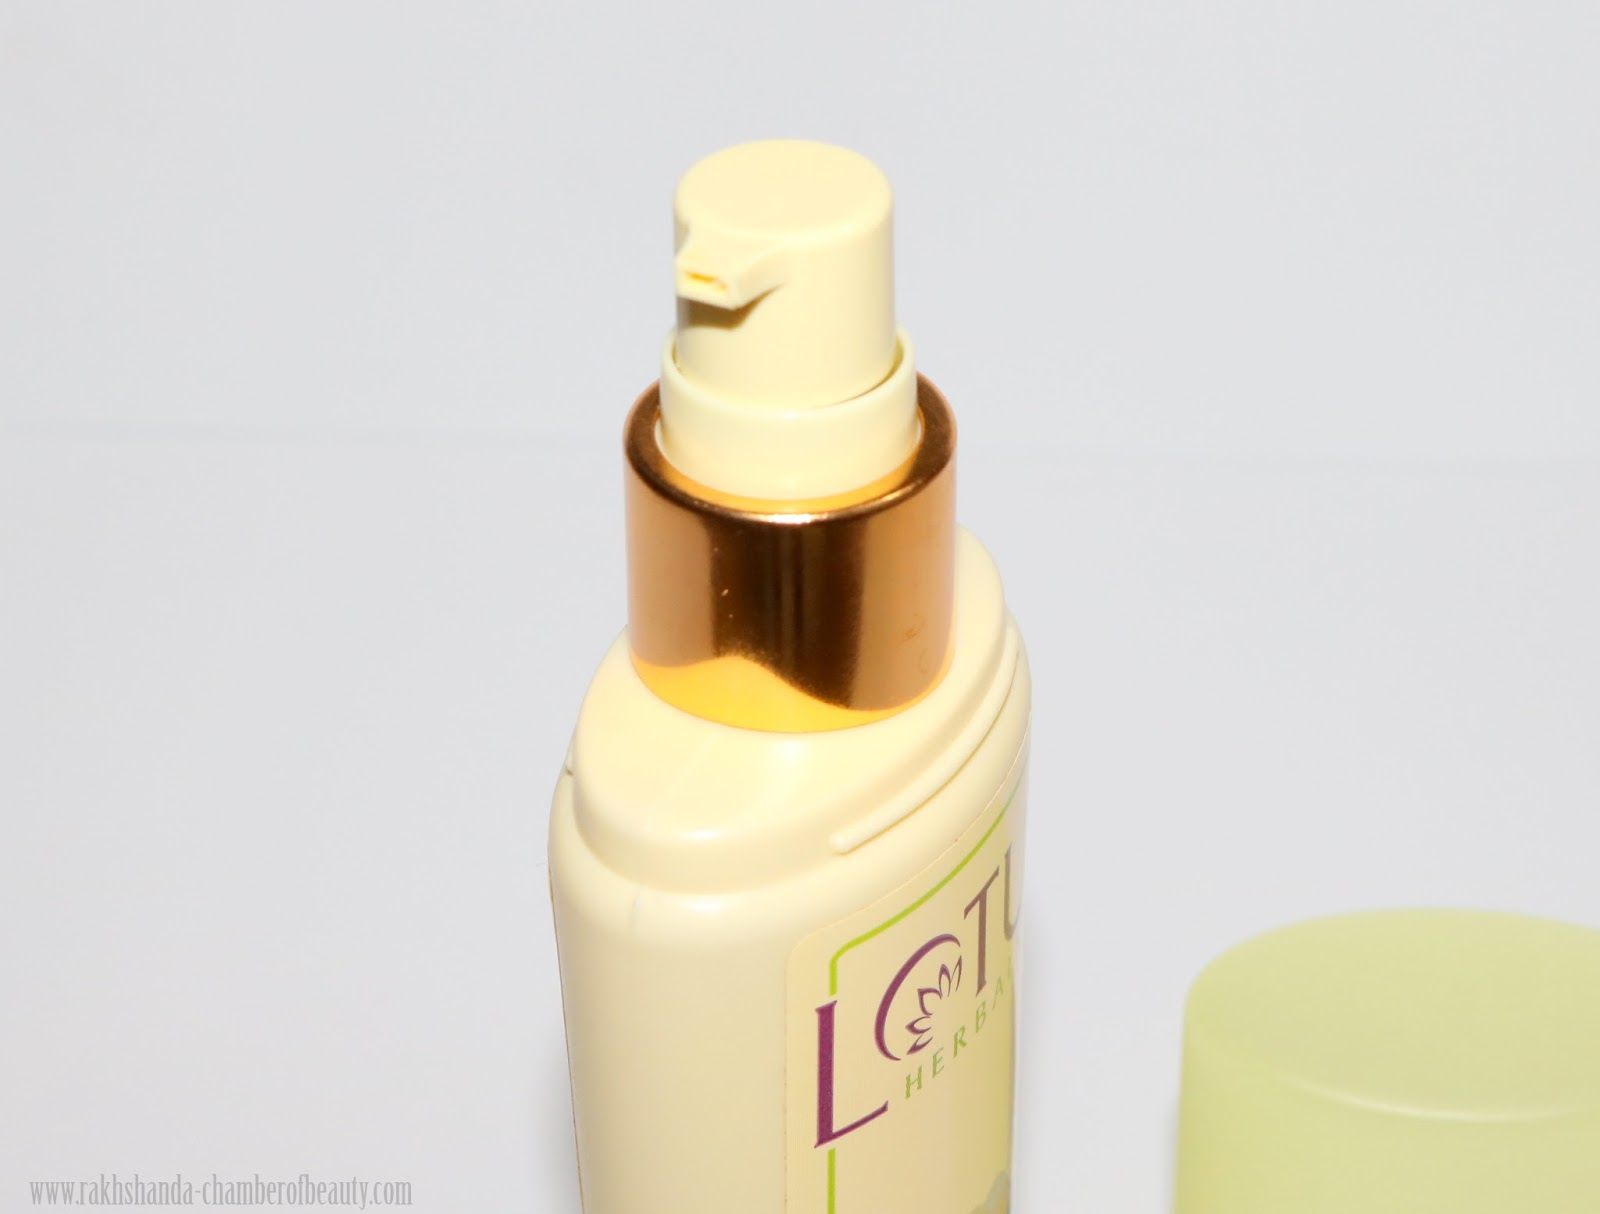 Lotus Herbals Lemonpure Cleansing Milk Review